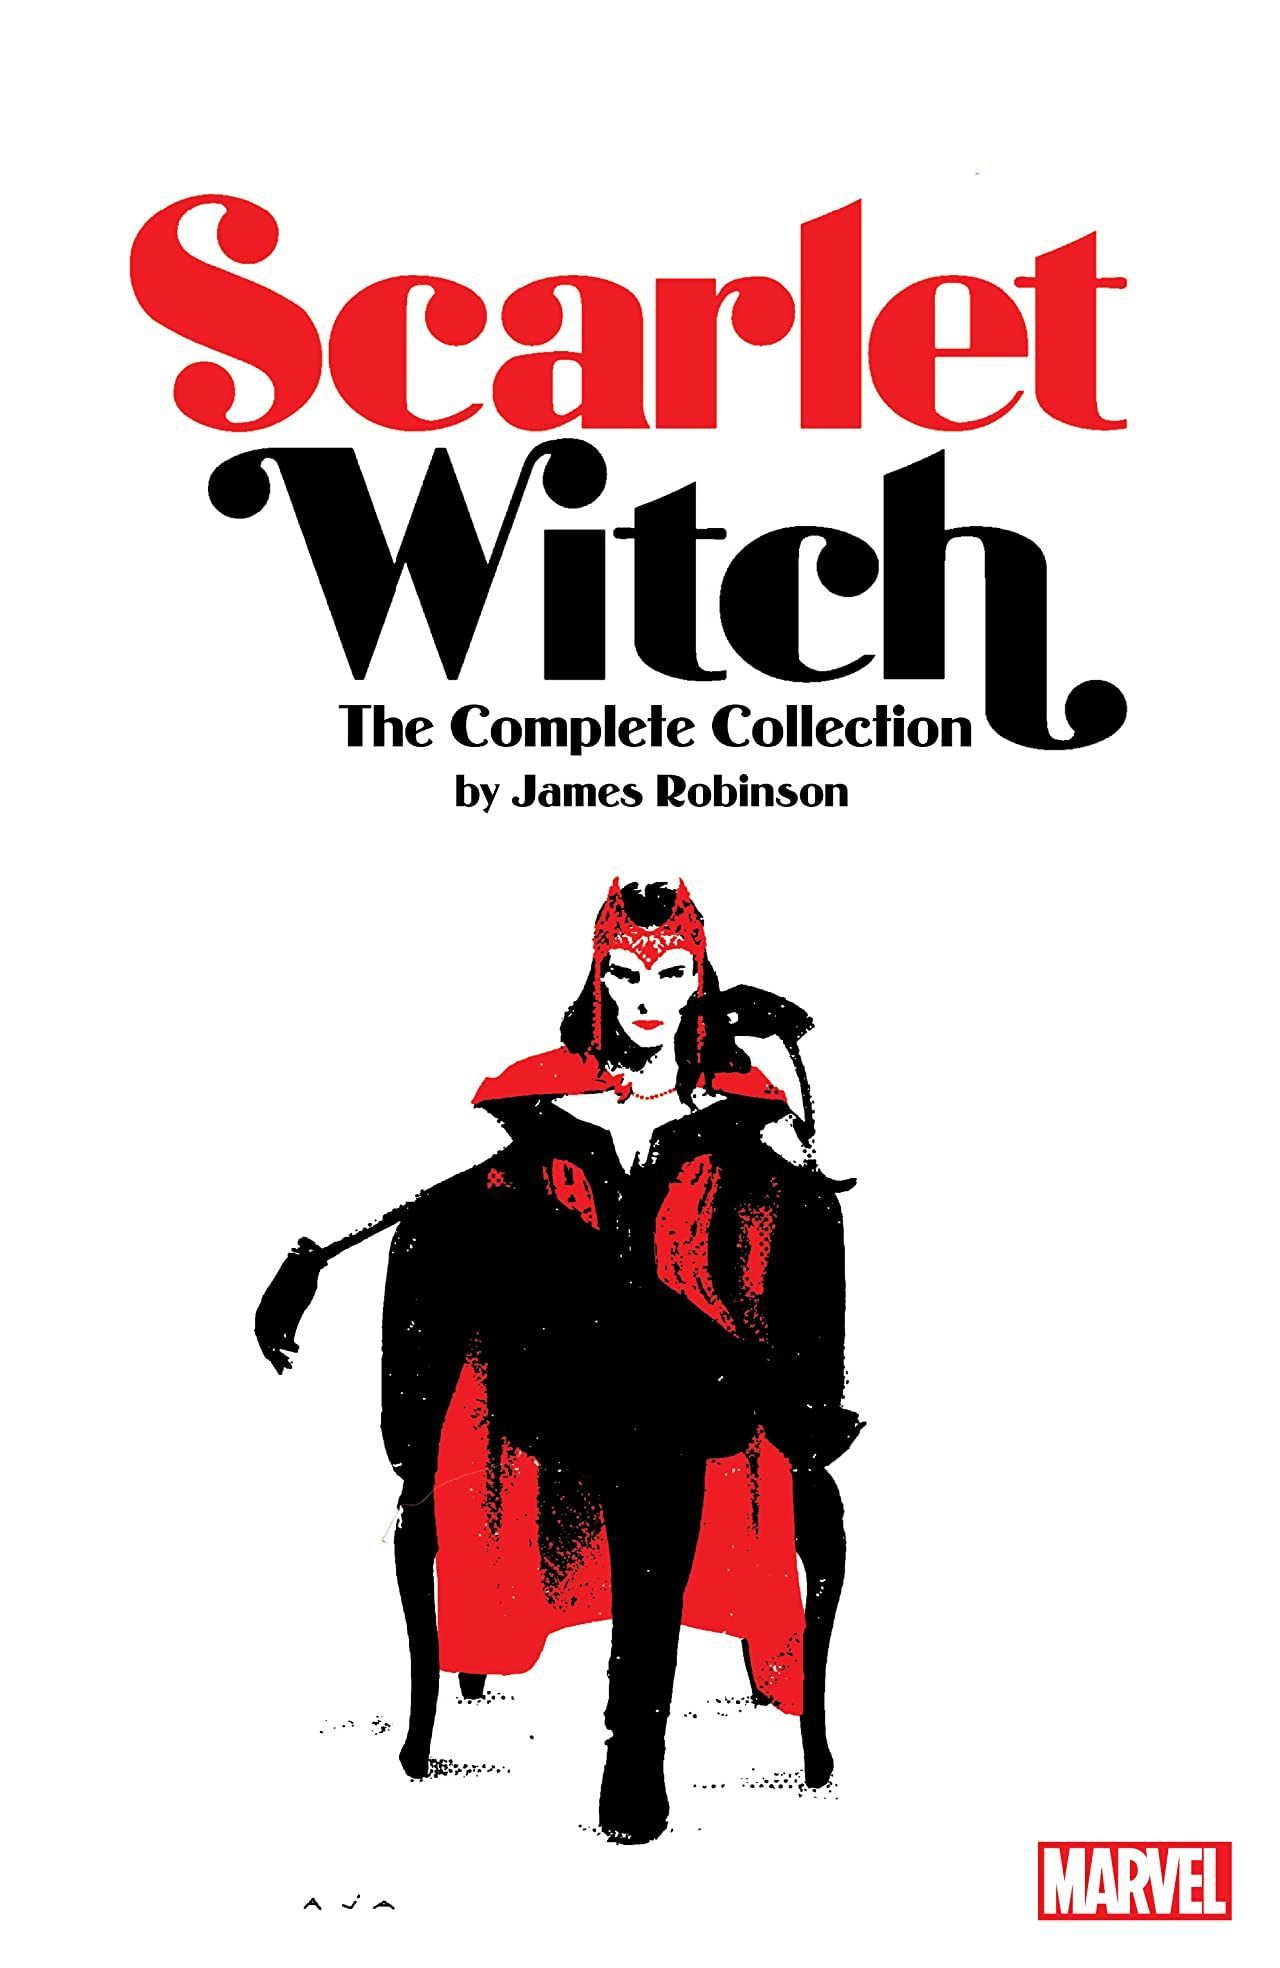 Scarlet Witch by James Robinson The Complete Collection